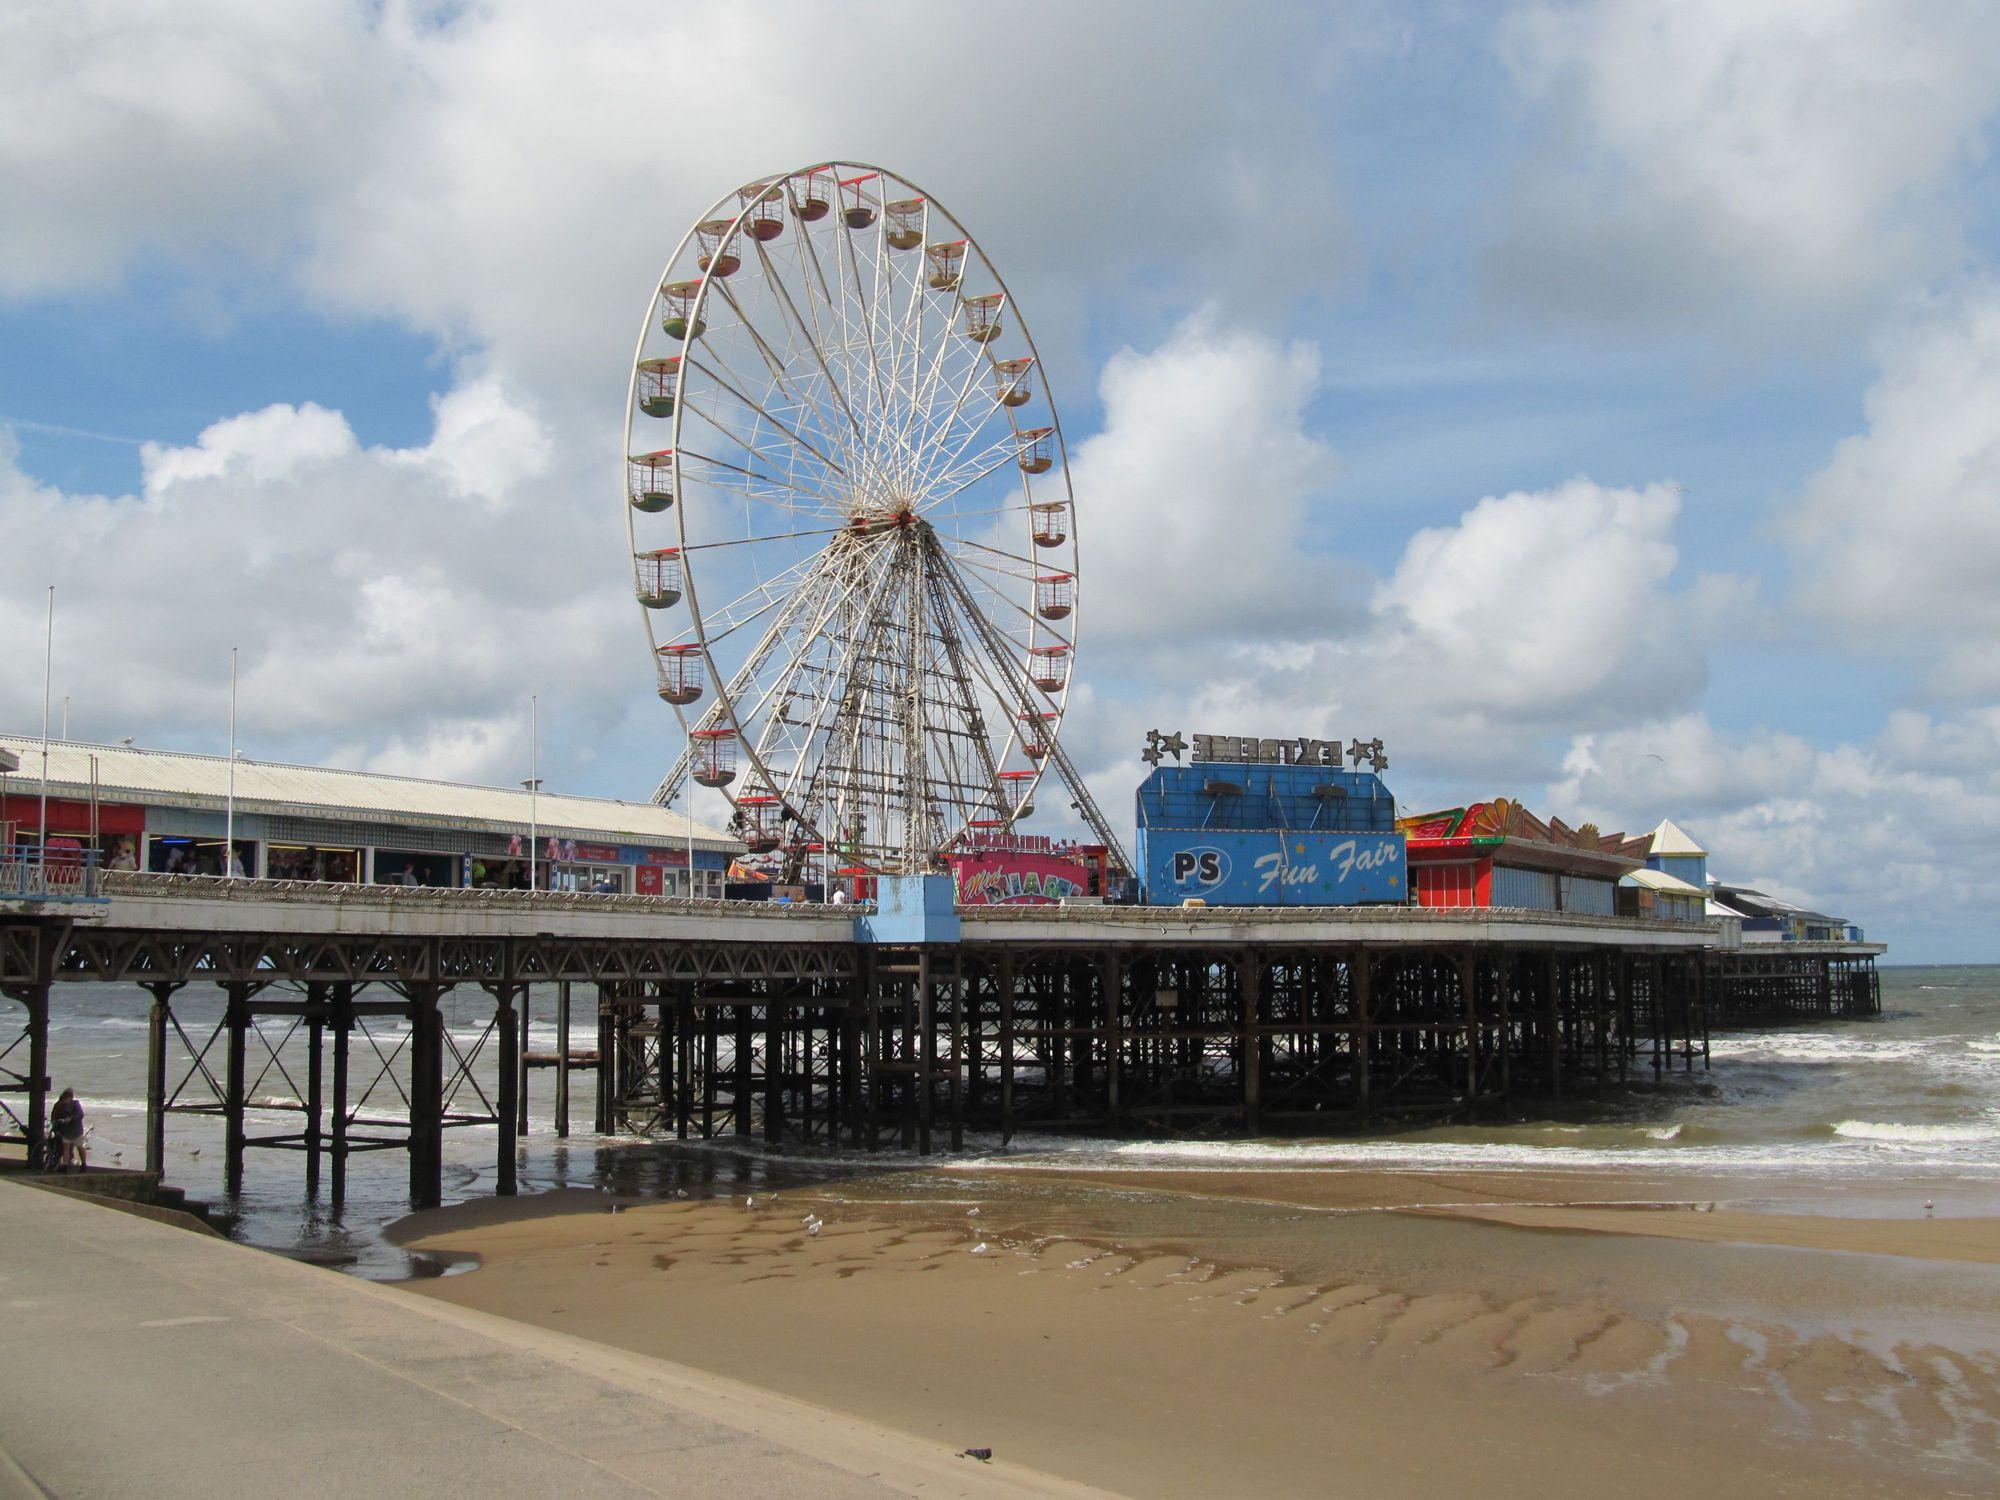 The Best Hotels, B&Bs & Self-Catering in Blackpool